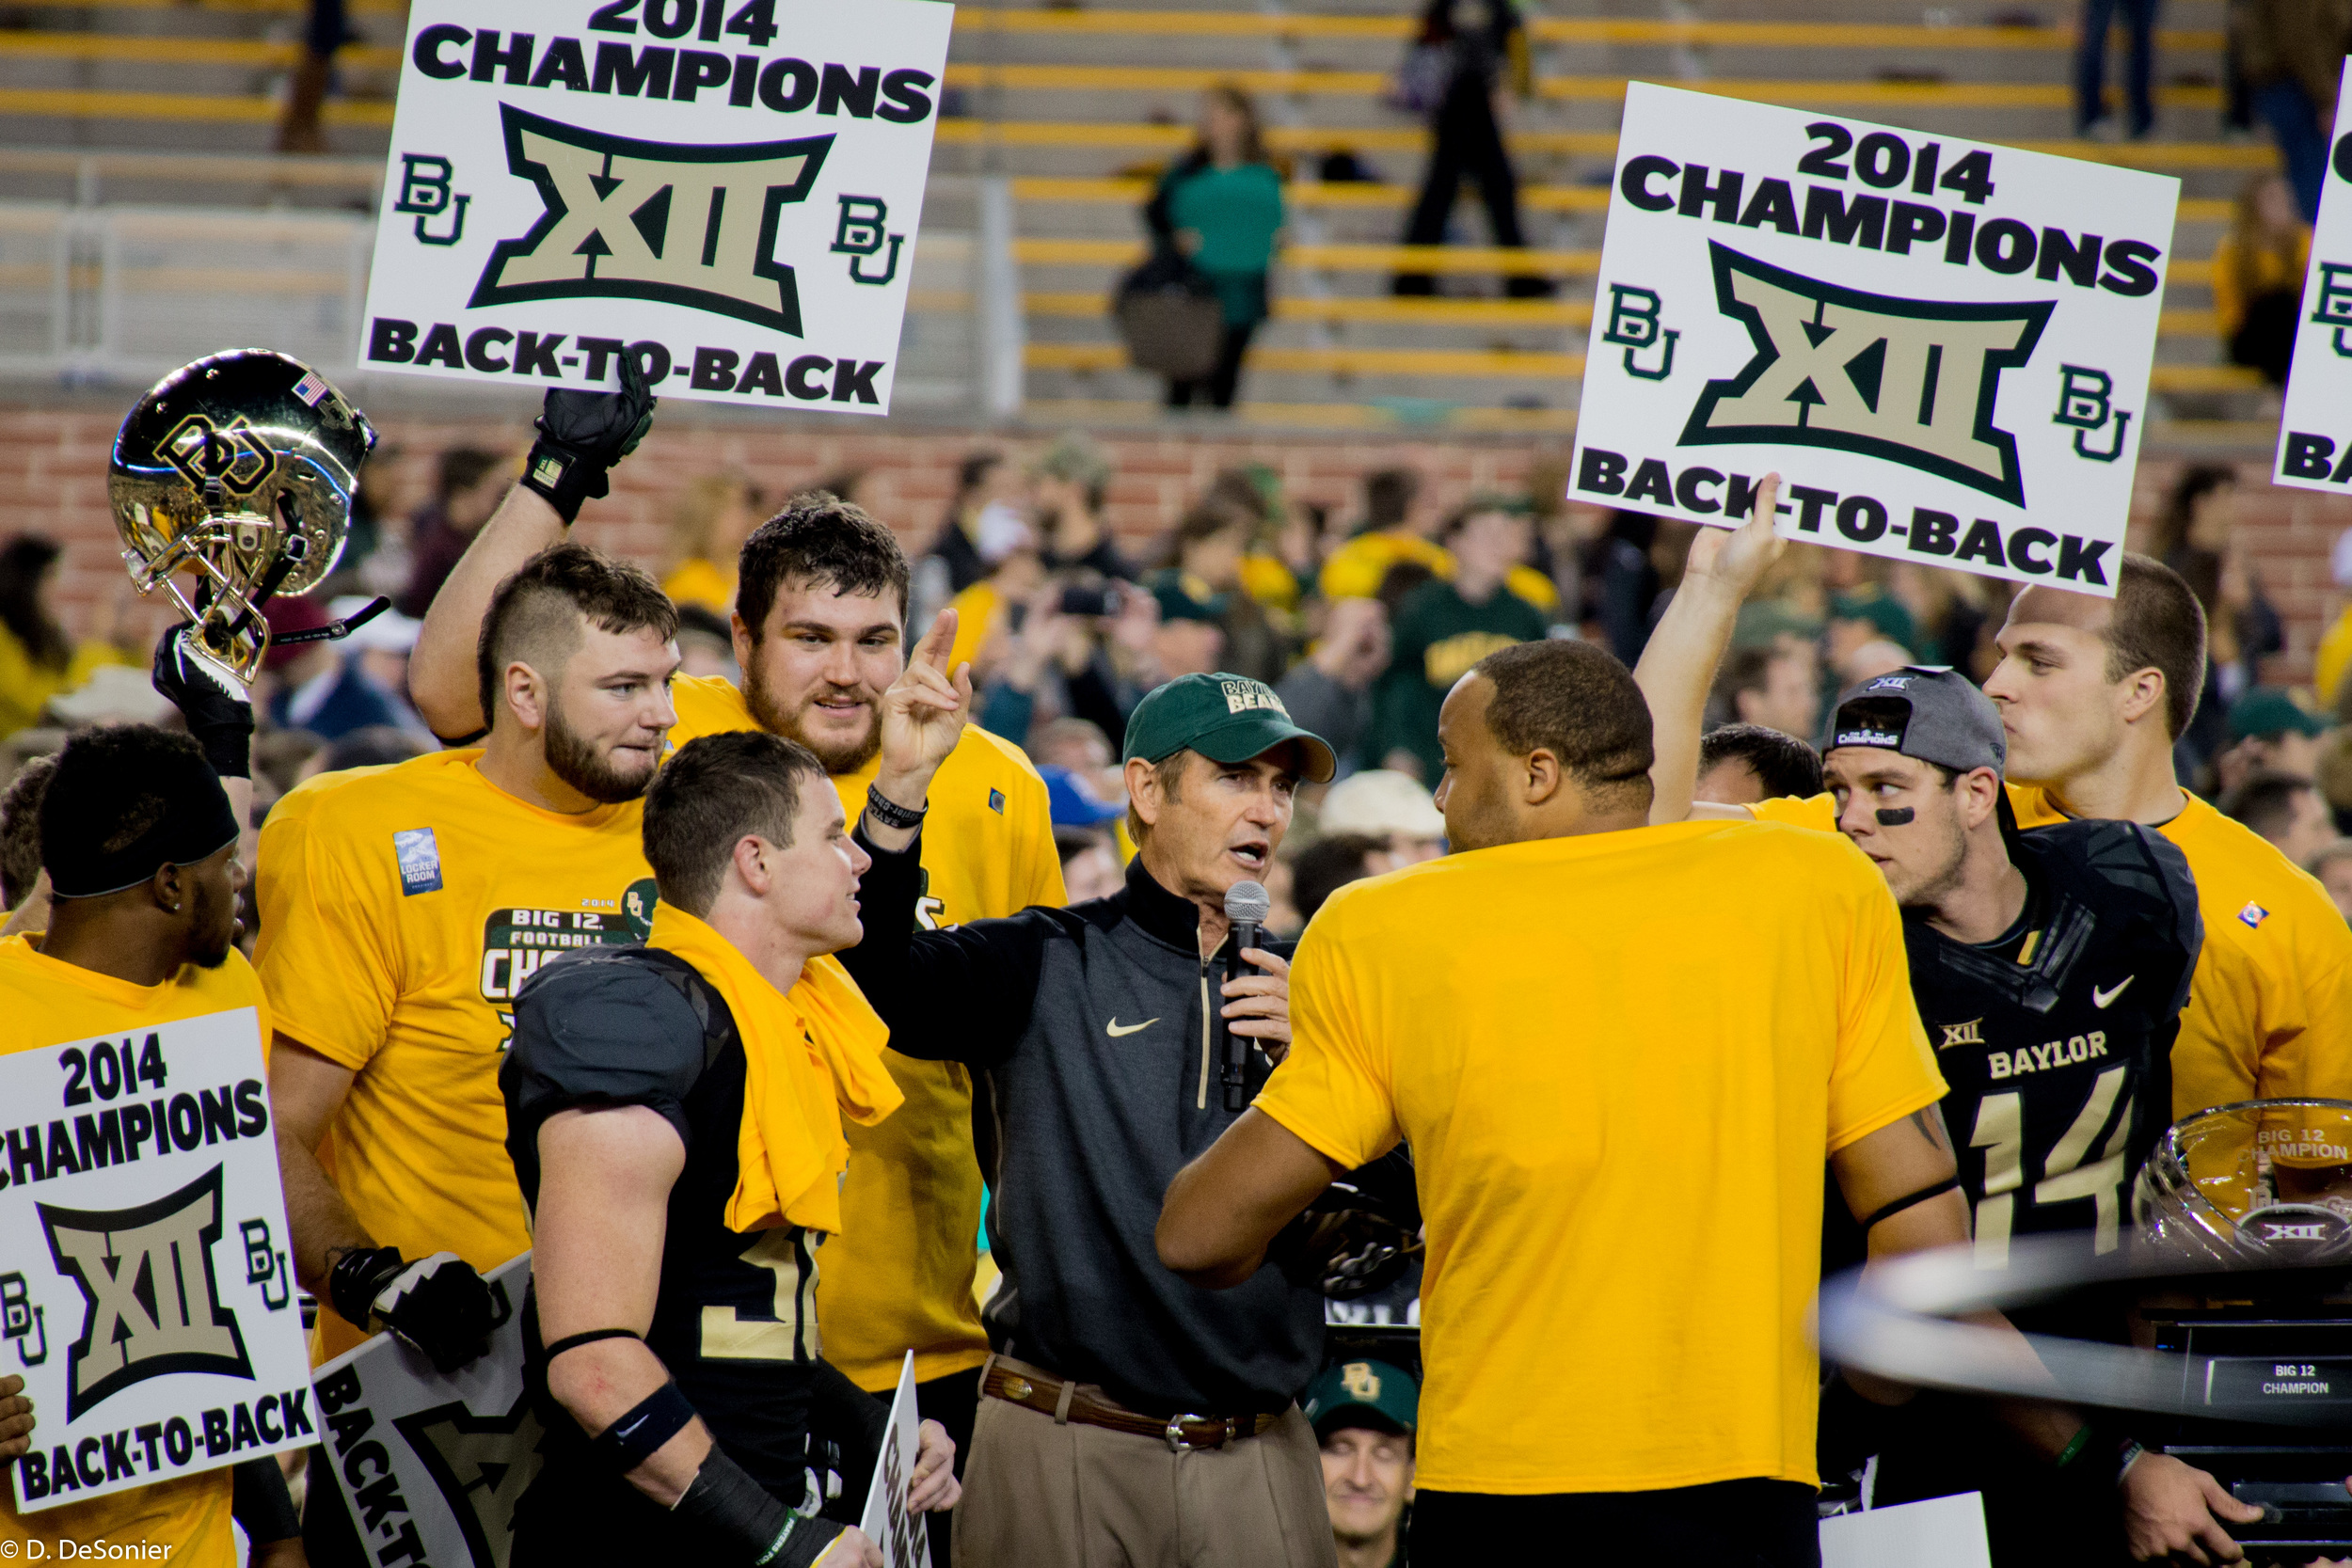 Big 12 champs -- second year in a row!